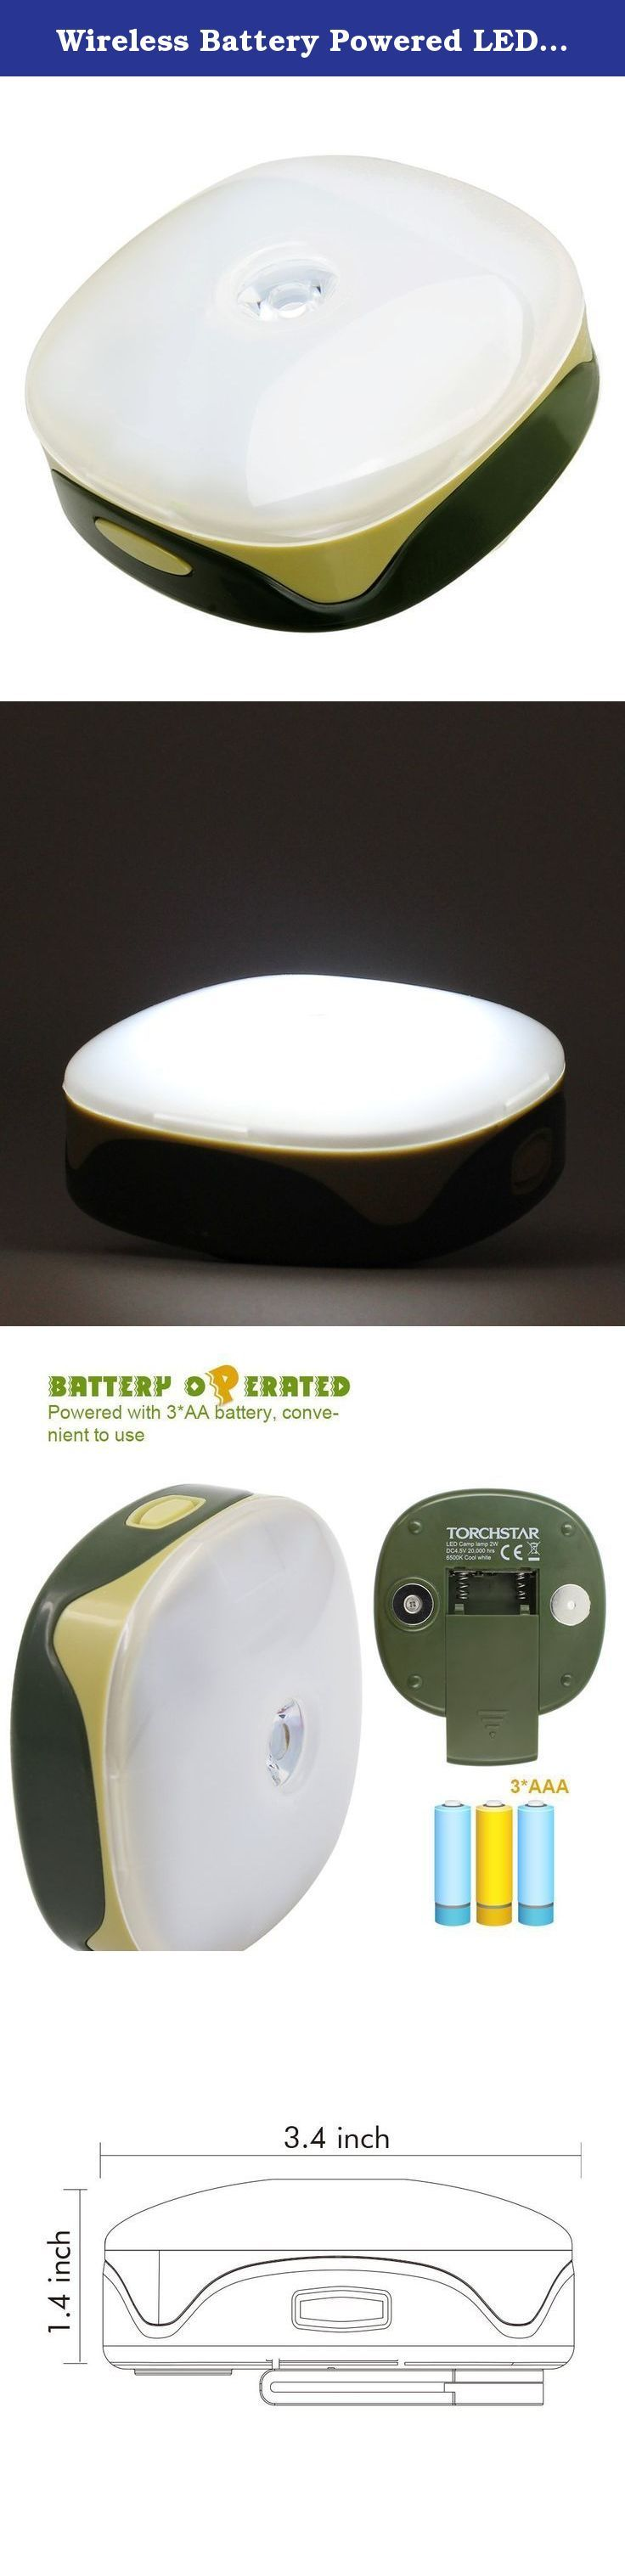 Wireless Battery Powered LED Camping Light, 5 Modes (100% Flood, 50% Flood, Spot Beam, Strobe, SOS) w/ Magnet, Detachable Strap for Backpacking, Auto, Tent, Home, Hiking, Camping, Emergencies, Outages. Planning a fantastic hiking for a longtime? Here is something for your camping gear list before your journey. Compact & Durable You will never be too surprised when you turn it on. It's so compact that you wouldn't expect the brightness. This compact size LED camping light can use as...